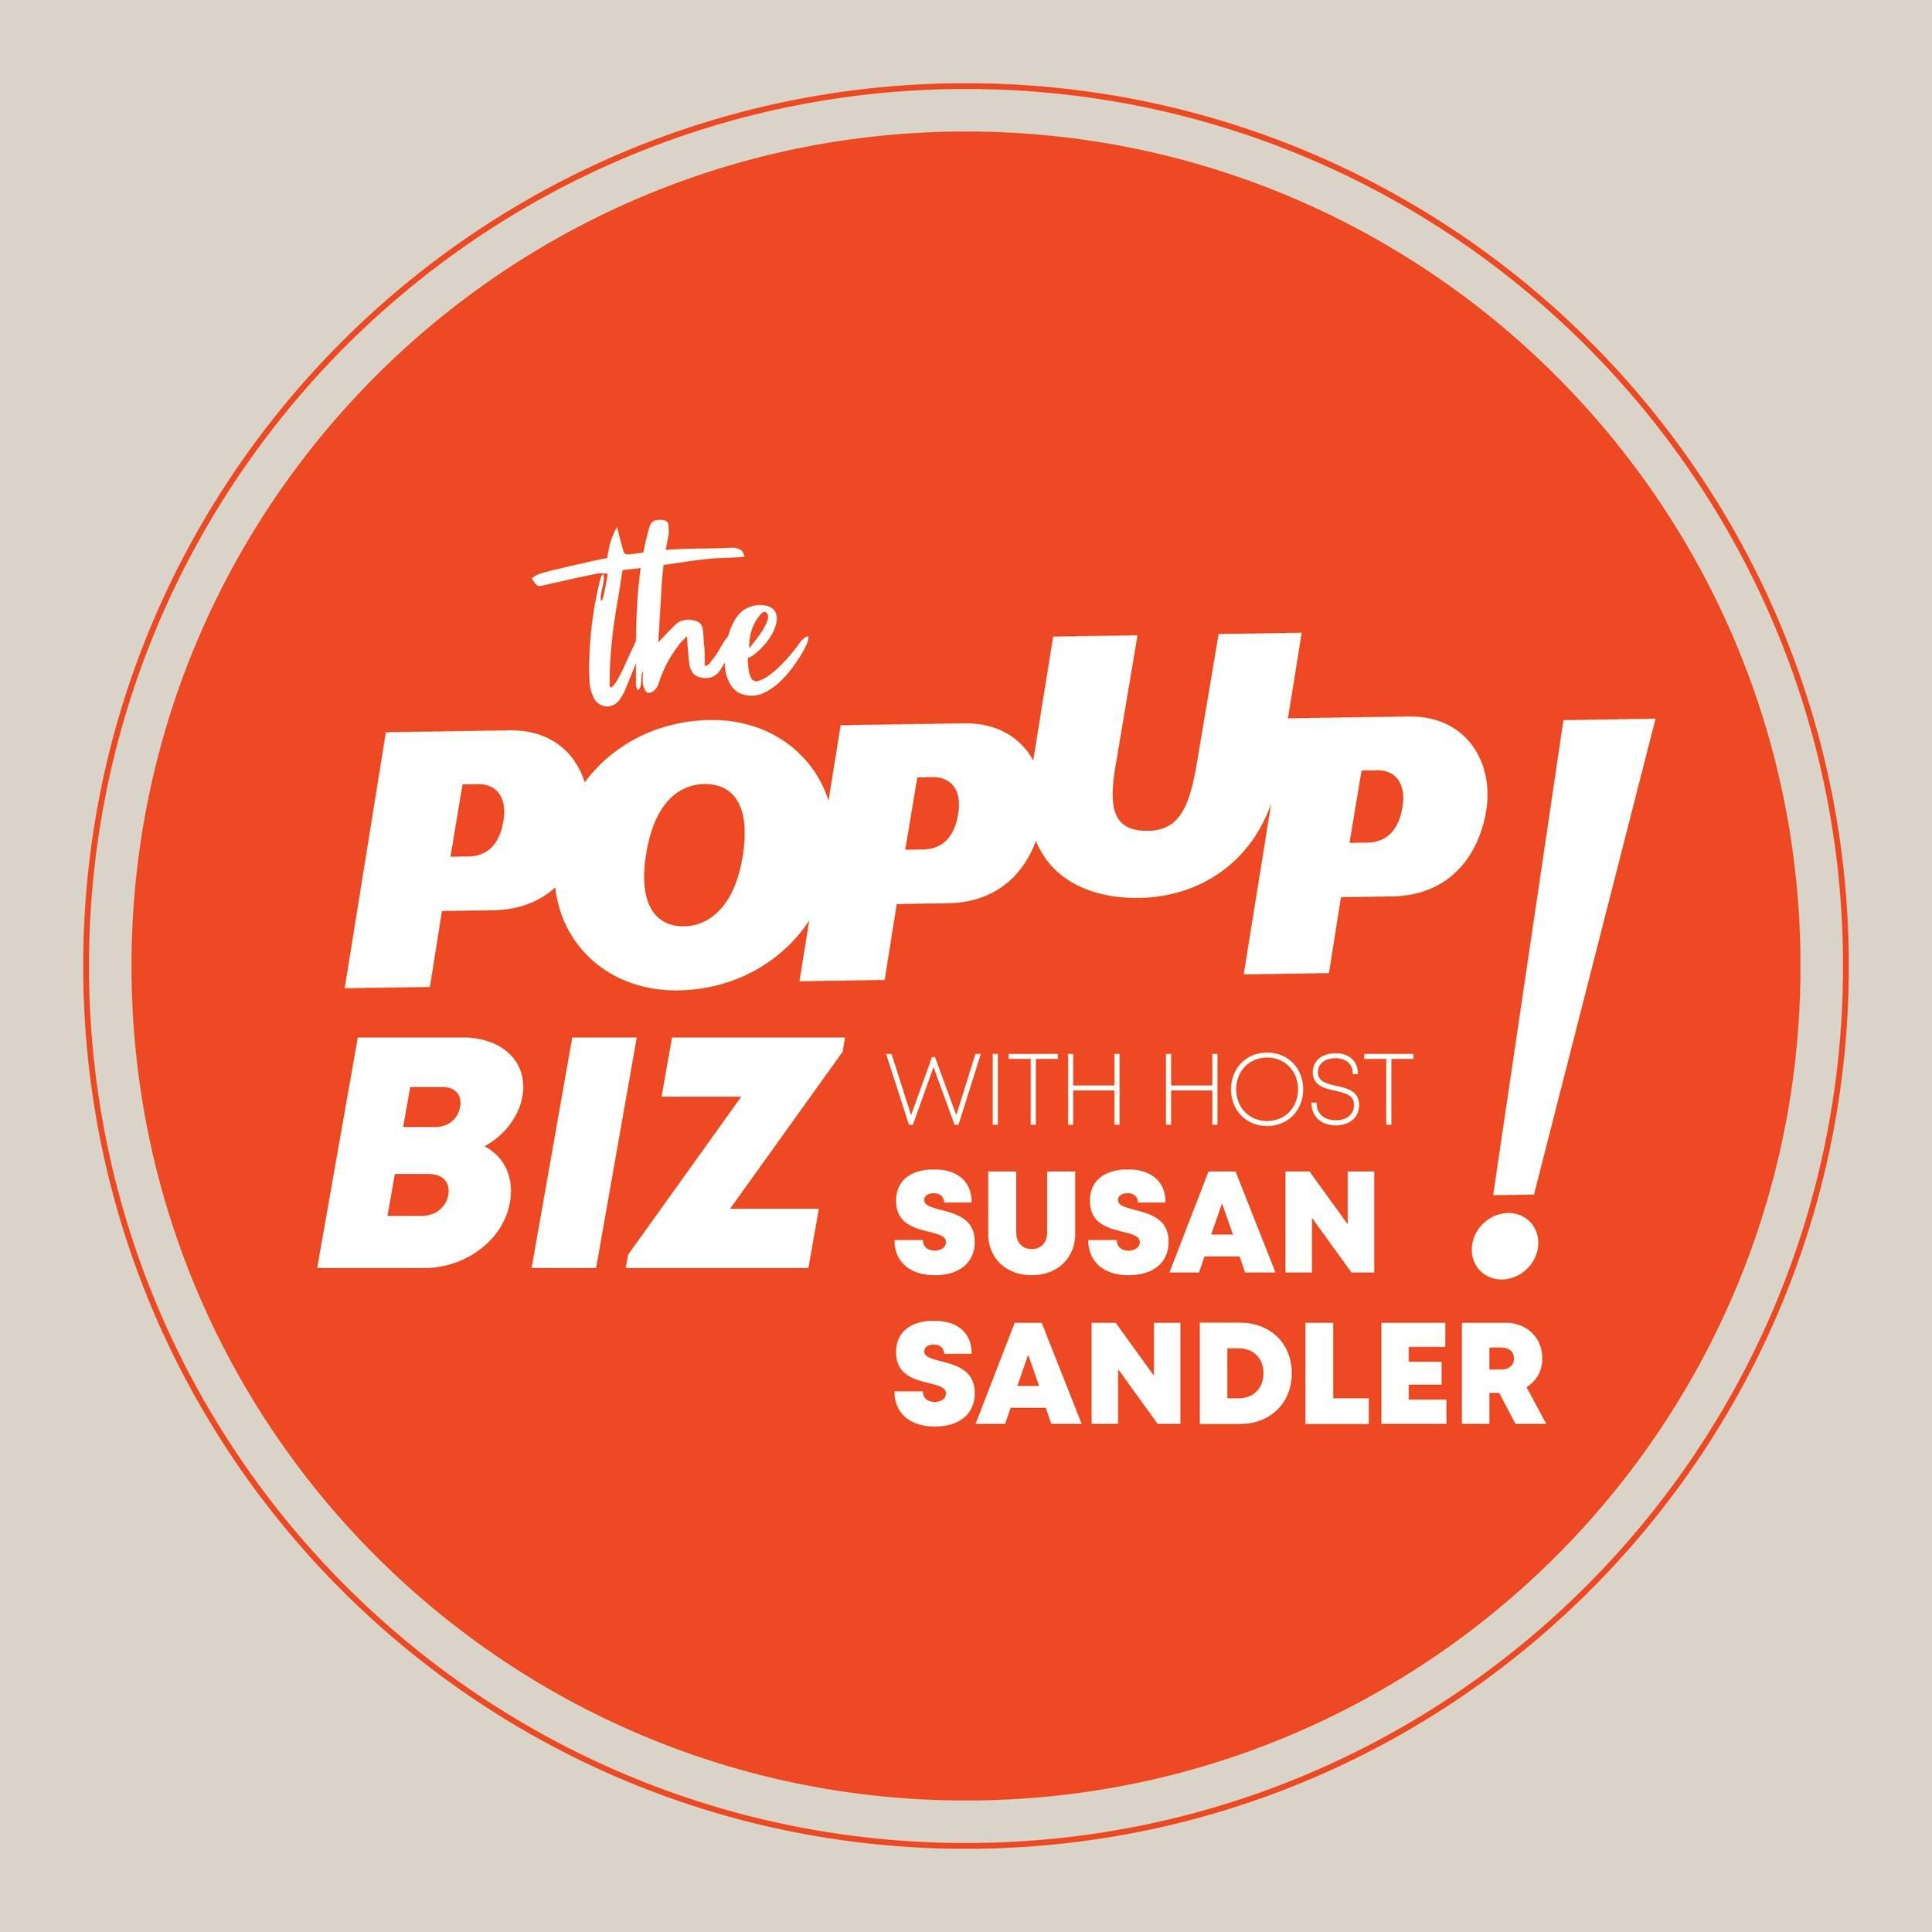 The Pop-Up Biz